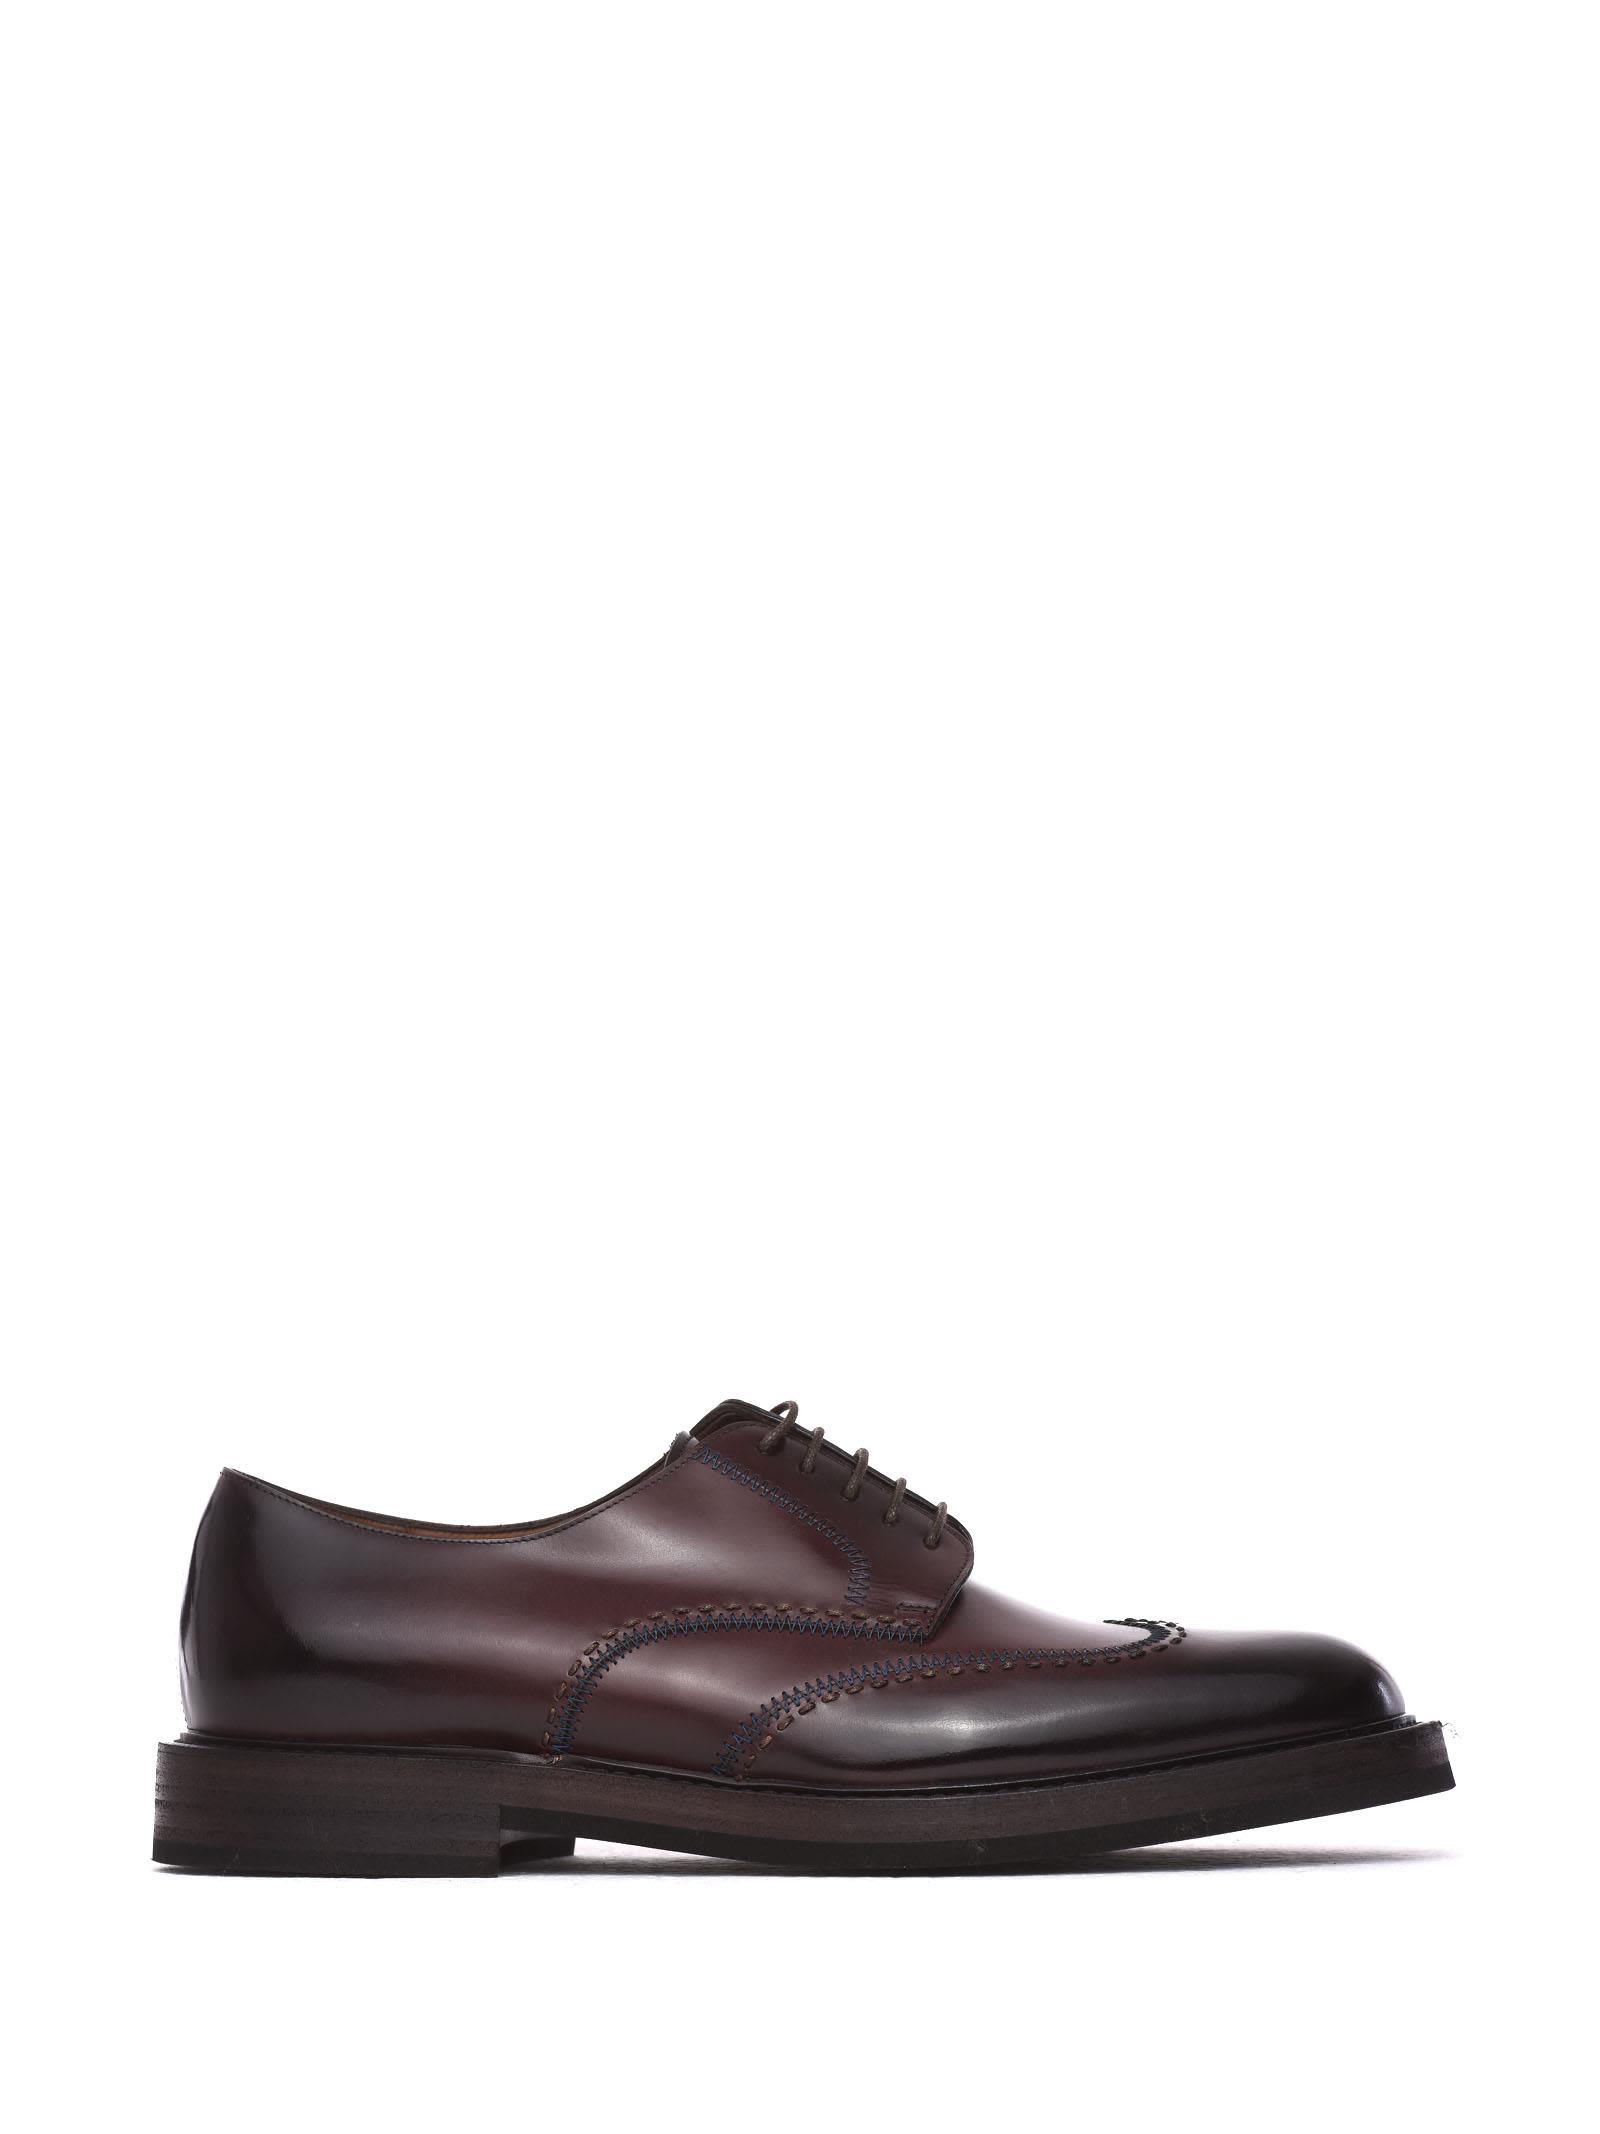 Oxford Shoes In Burgundy Calf Leather